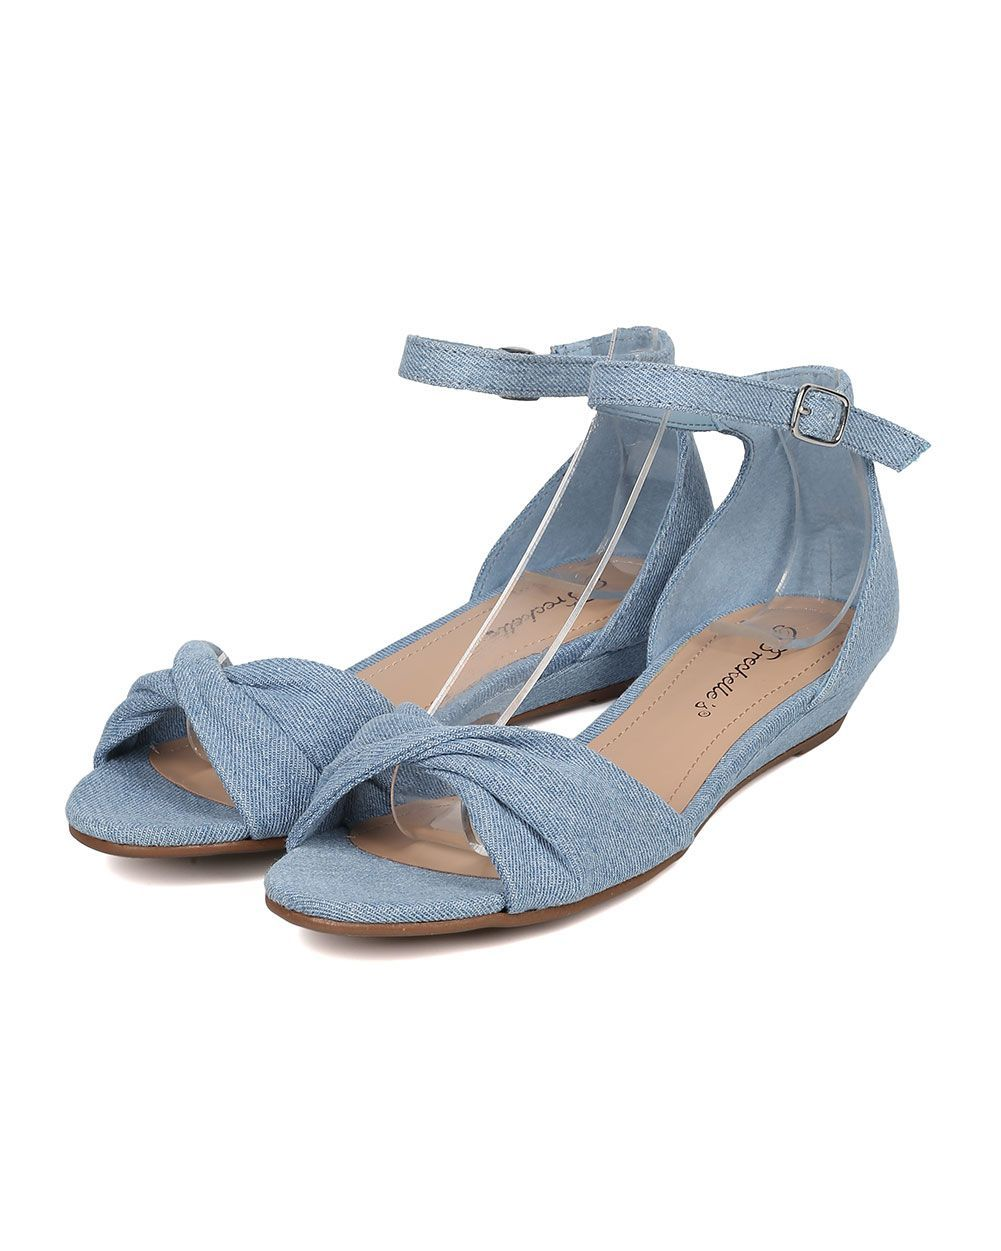 d49935931b73 Shoes Breckelles HK38 Women Denim Open Toe Twisted Ankle Strap Low Wedge  Sandal  AnklestrapsHeels